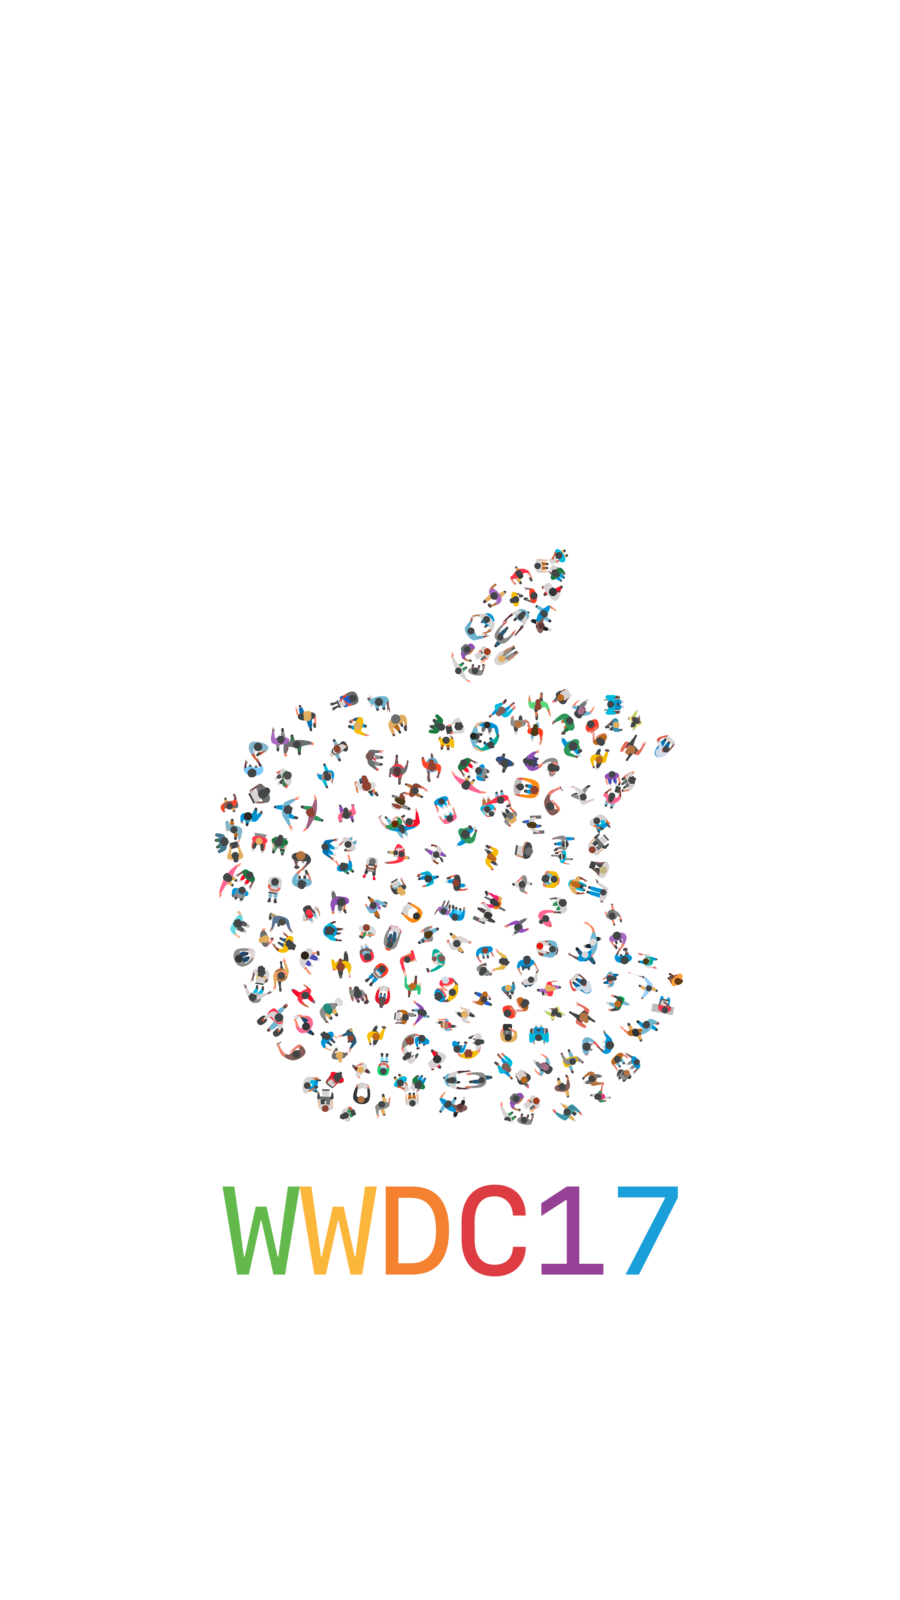 wwdc17-lockscreen-iPhone-wallpaper-mattbirchler-white-900x1600